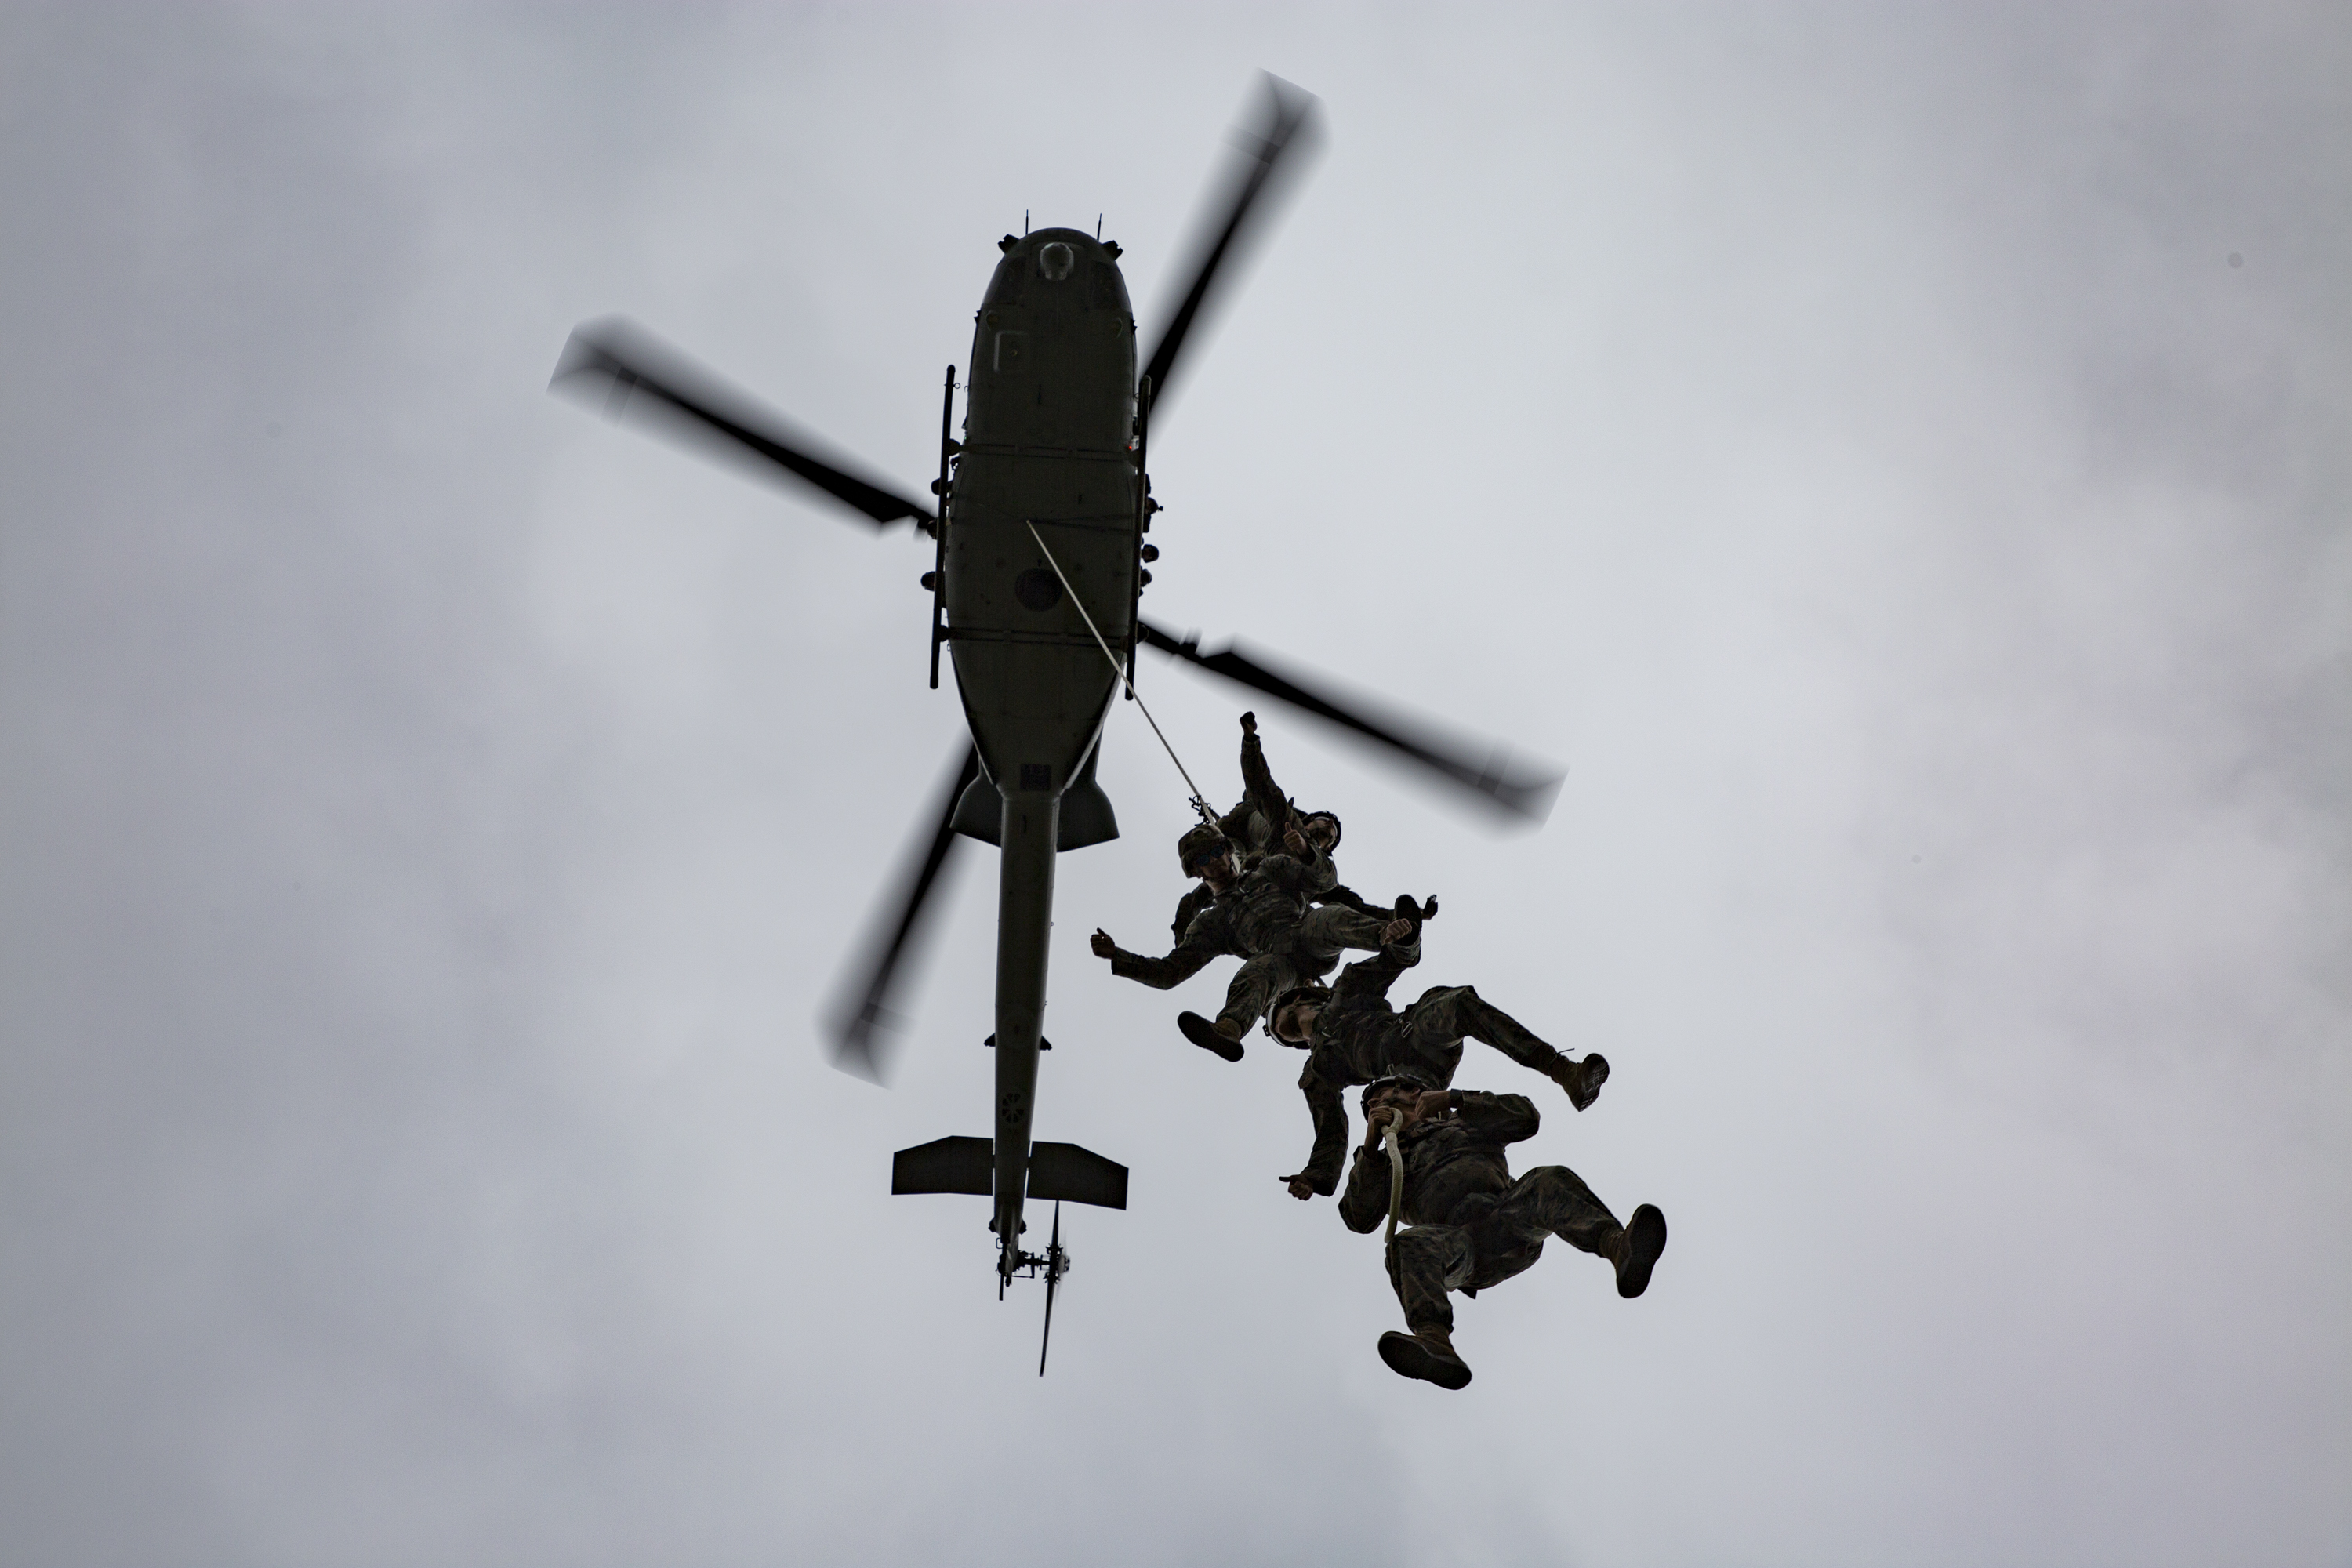 U.S. Marines with III Marine Expeditionary Force (III MEF), Expeditionary Operation Training Group (EOTG) with Marine Light Attack Helicopter Squadron 469 (HMLA-469), conduct special patrol insertion/extraction and helicopter rappel training at Camp Hansen, Okinawa, Japan, Oct. 23, 2020. EOTG trains Marines before being attached to Marine Expeditionary Units, where they will conduct operations using these techniques. (U.S. Marine Corps photo by Lance Cpl. Dalton J. Payne)